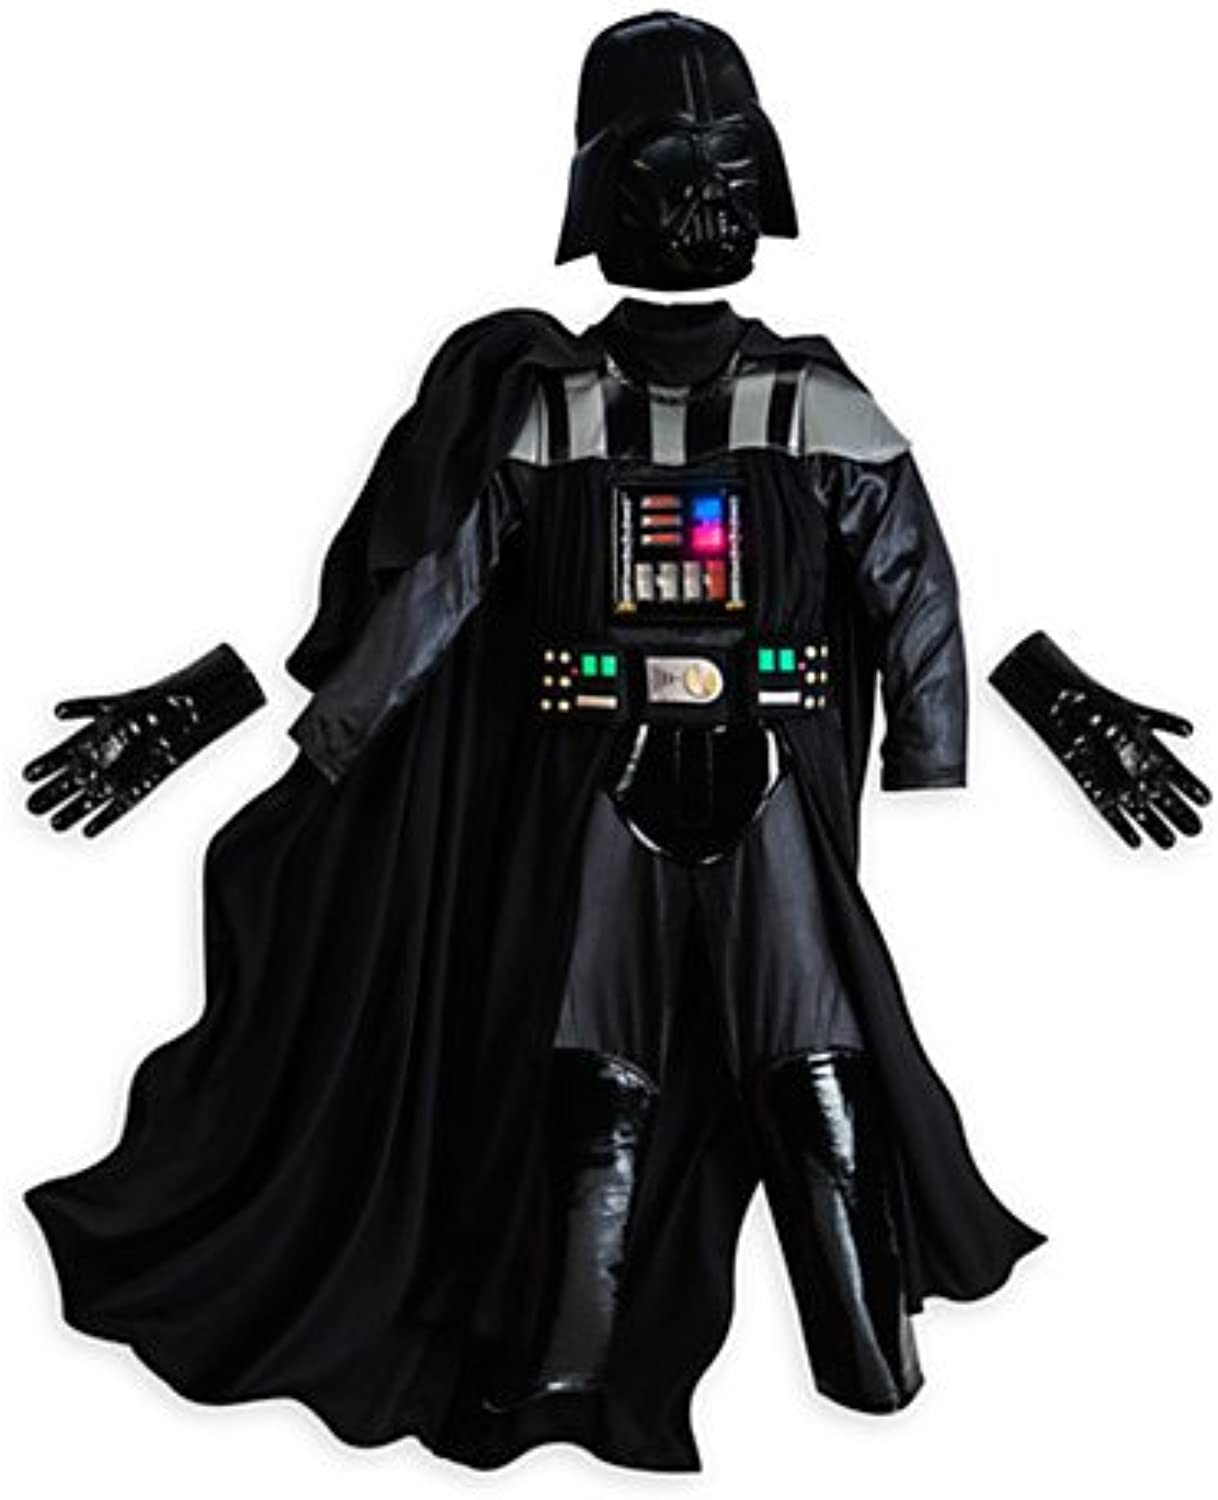 Darth Vader LightUp Costume For Kids Size 56 Years